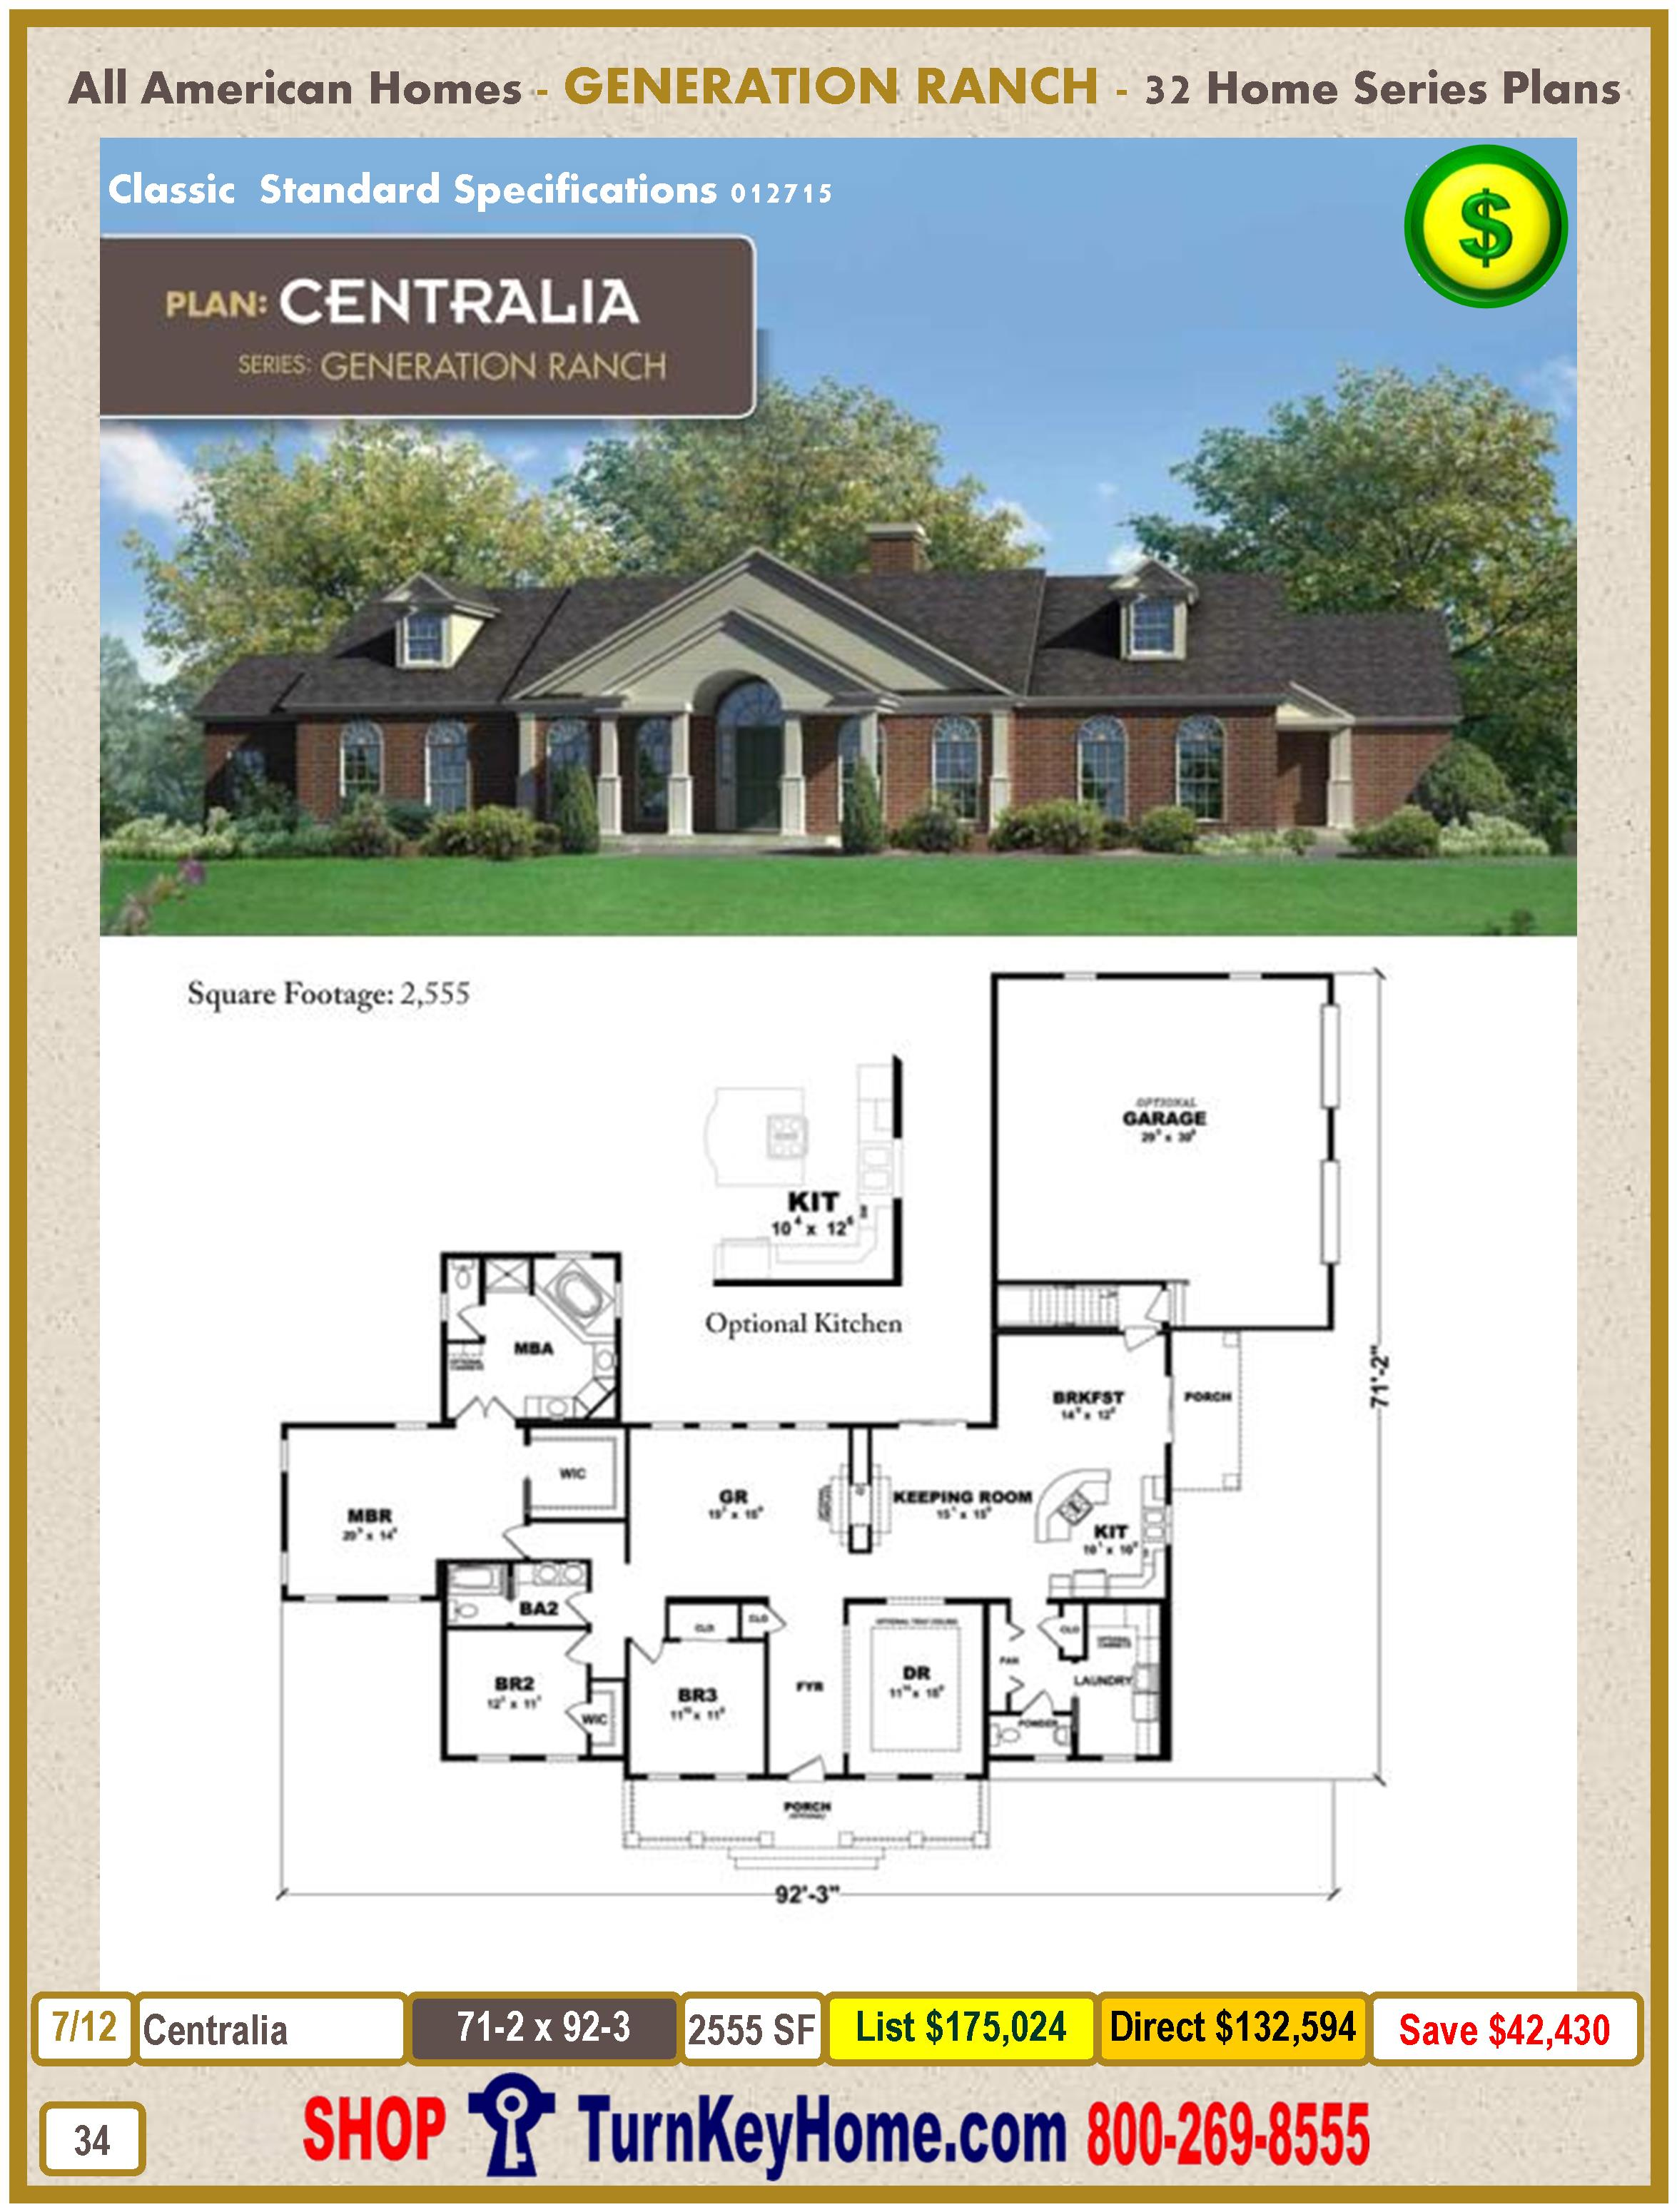 Modular.All.American.Homes.Generation.Ranch.Home.Series.Catalog.Page.34.Centralia.Direct.Price.021415